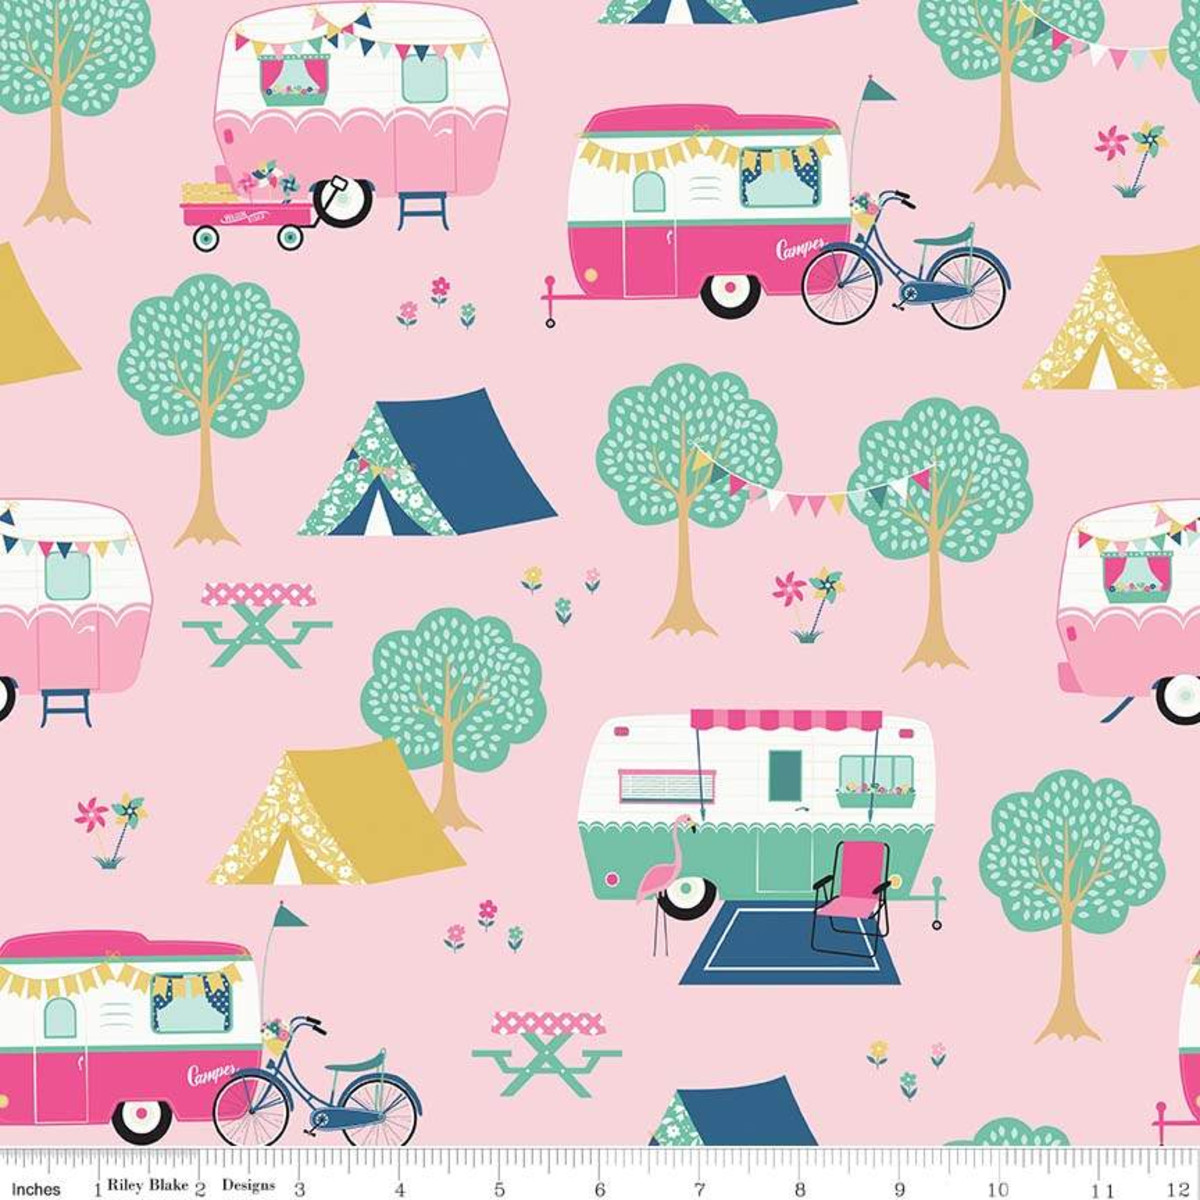 I'D rather be glamping - main pink